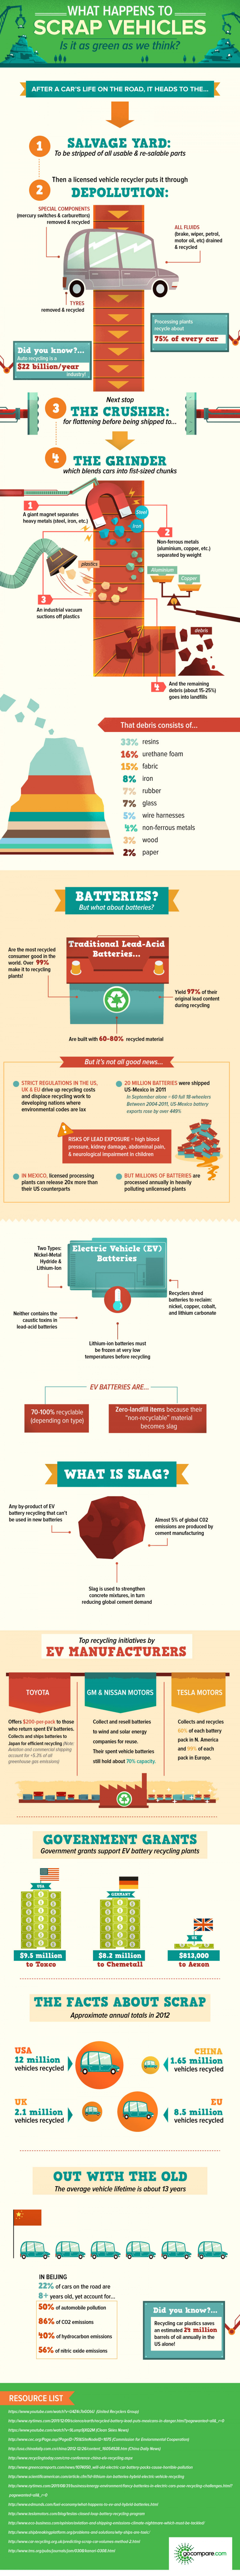 What Happens to Scrap Vehicles? Infographic